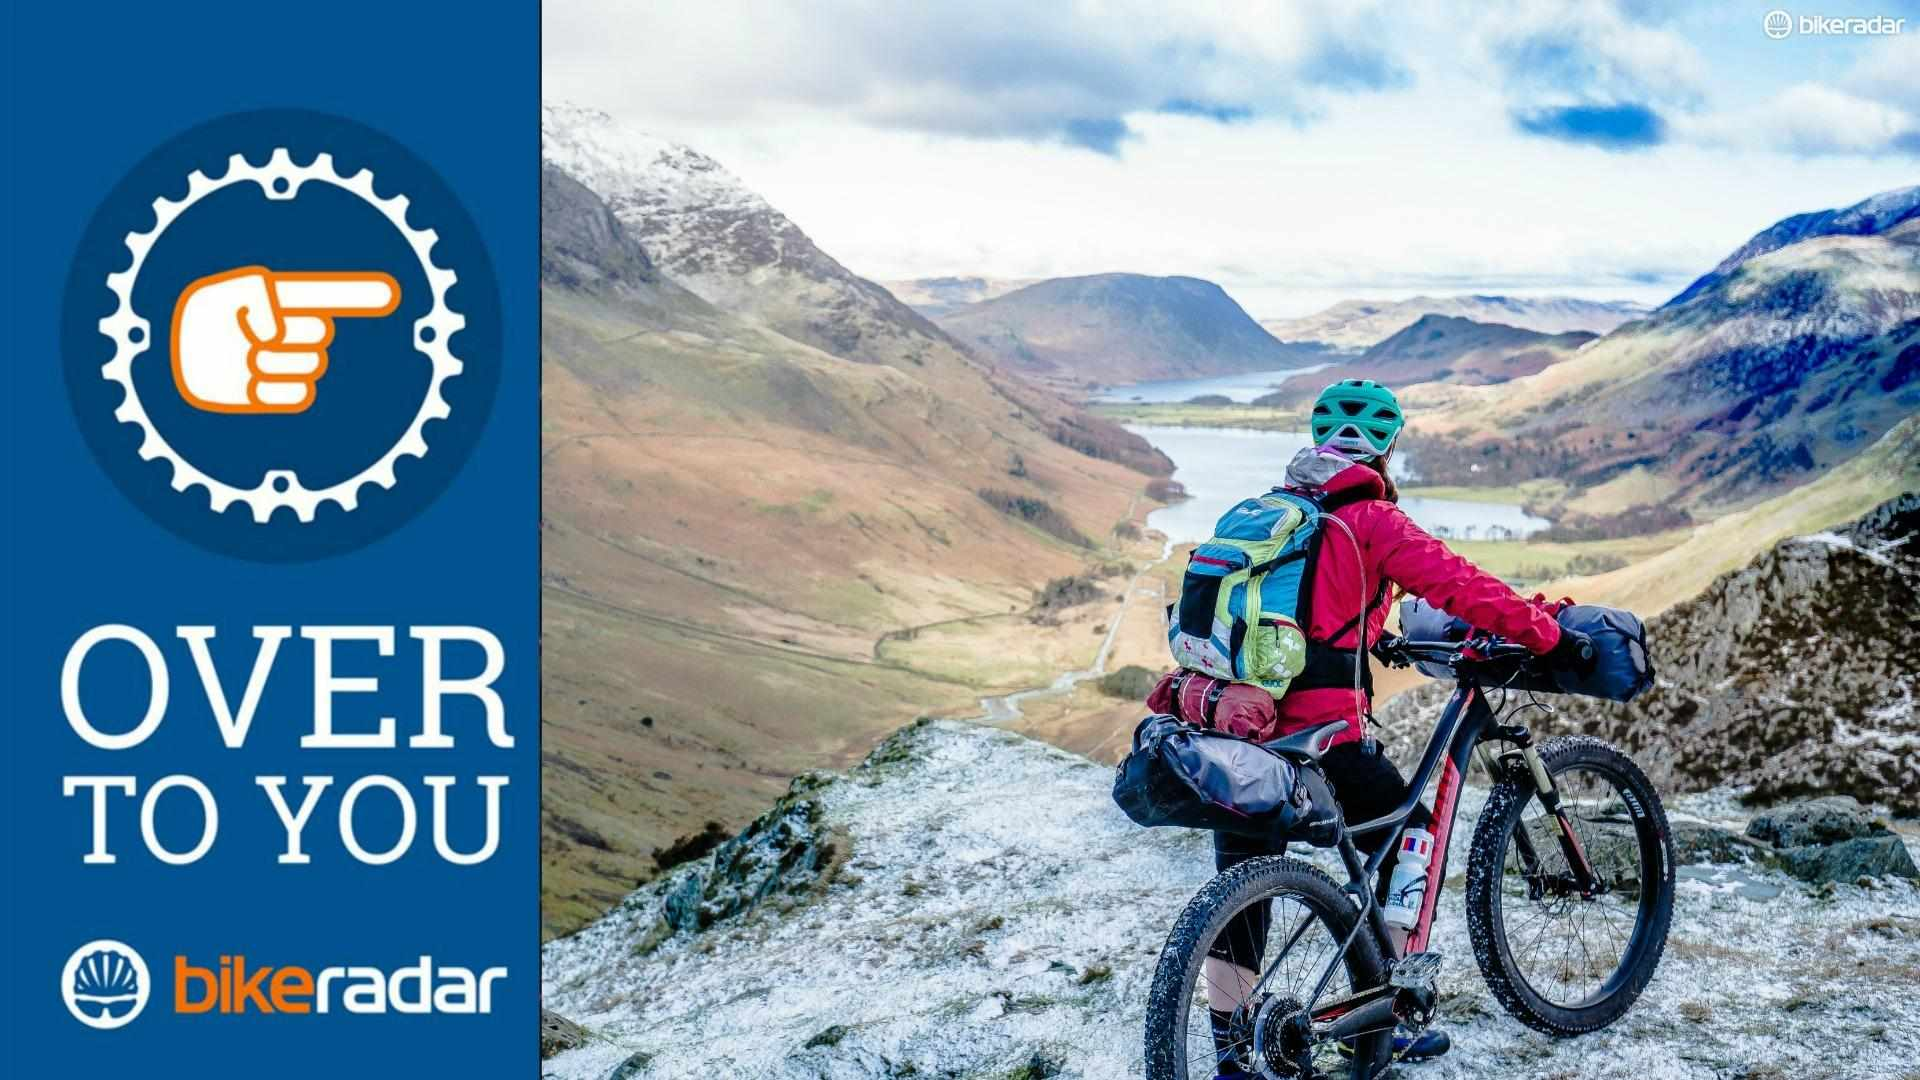 Bucket list rides don't need to be miles away. The Lake District in the UK delivered this outstanding view